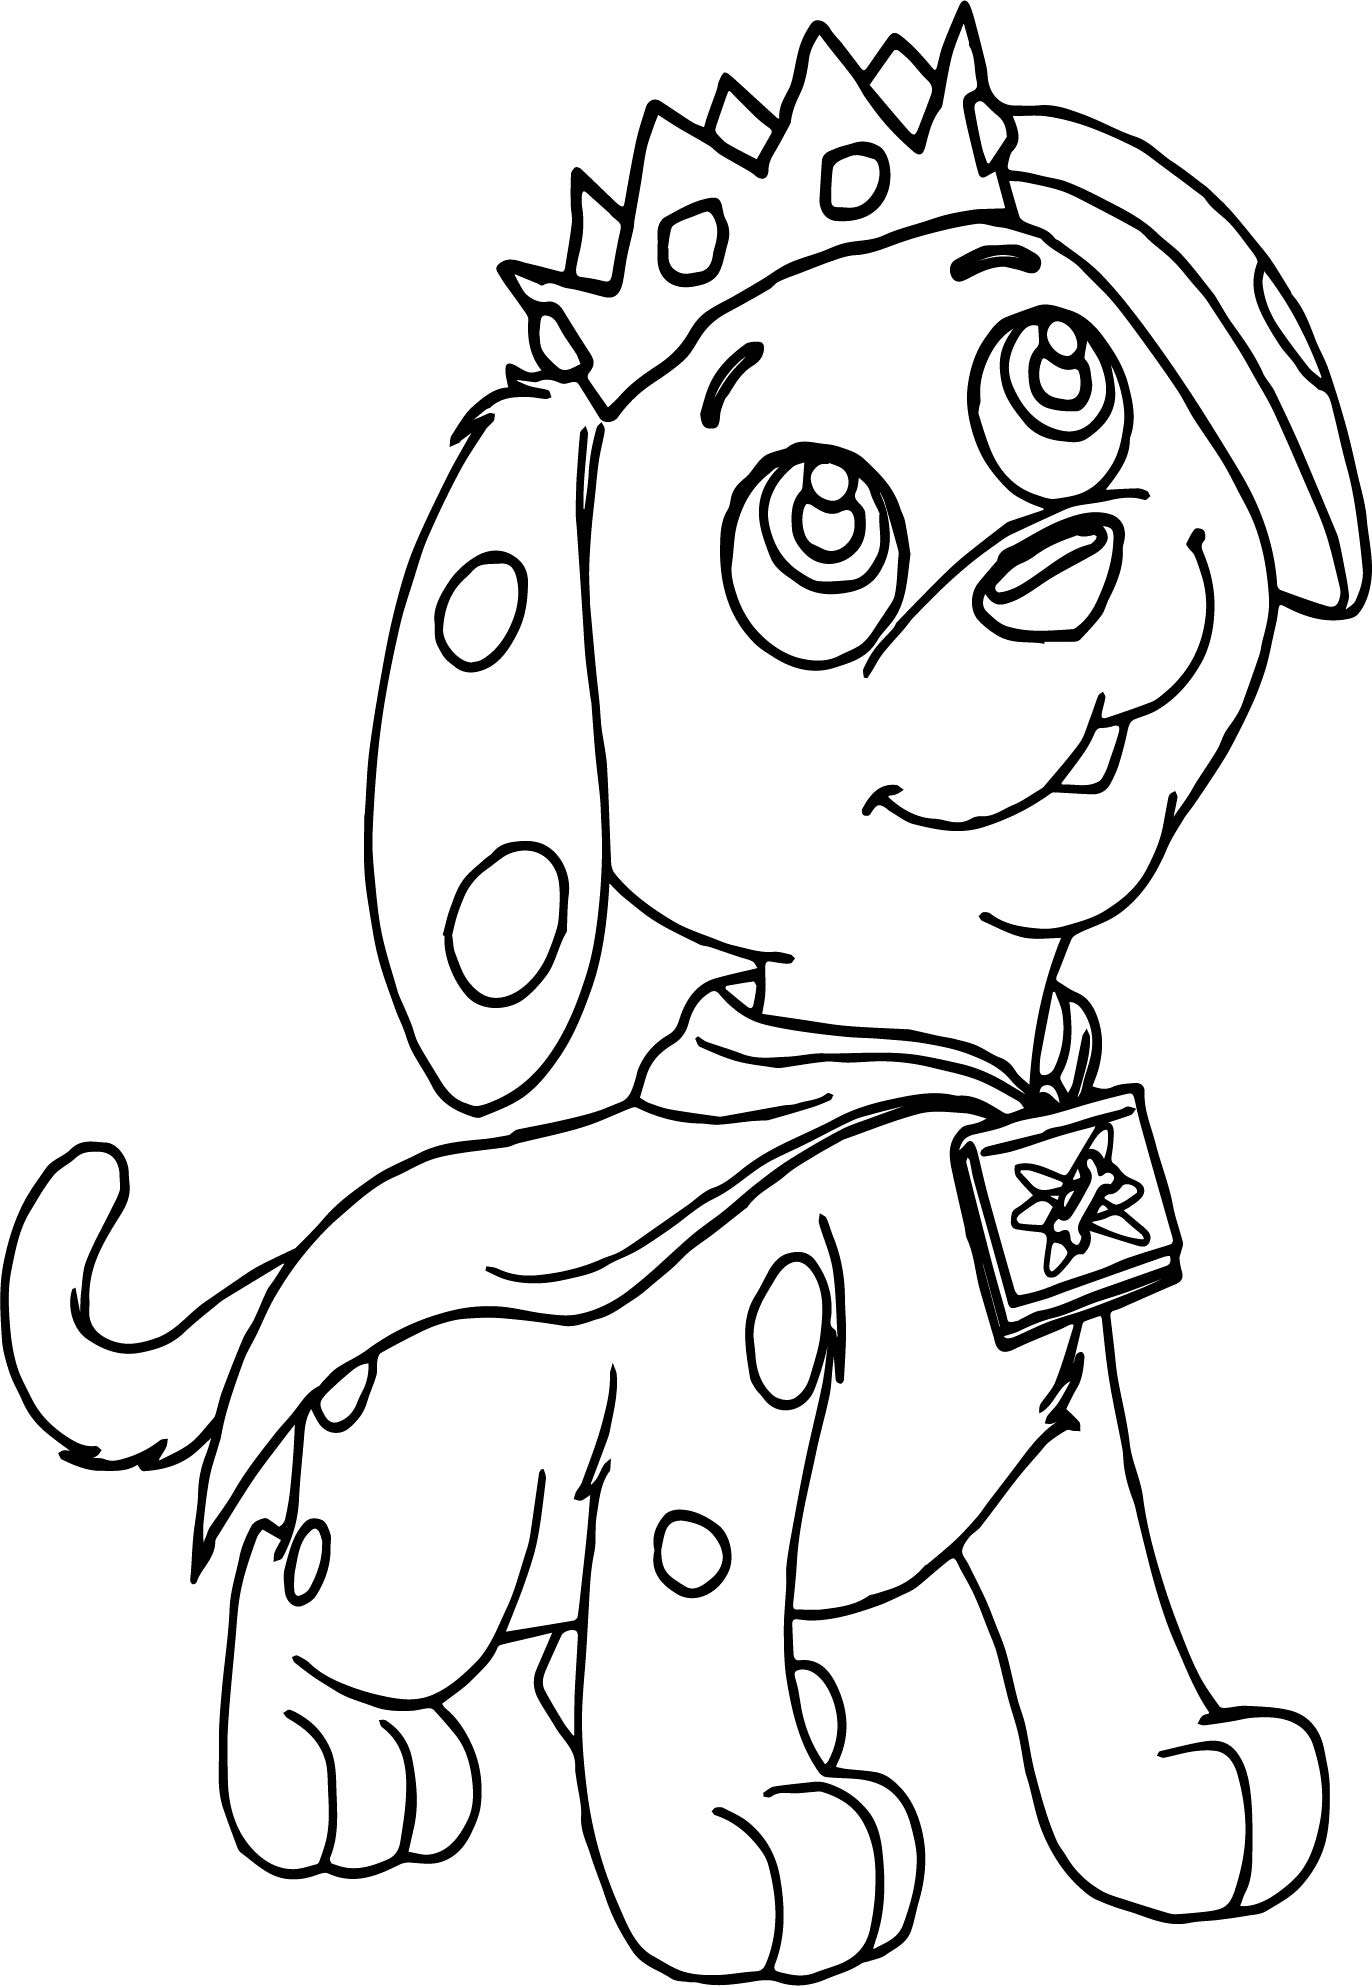 prince puppy super why coloring page wecoloringpage